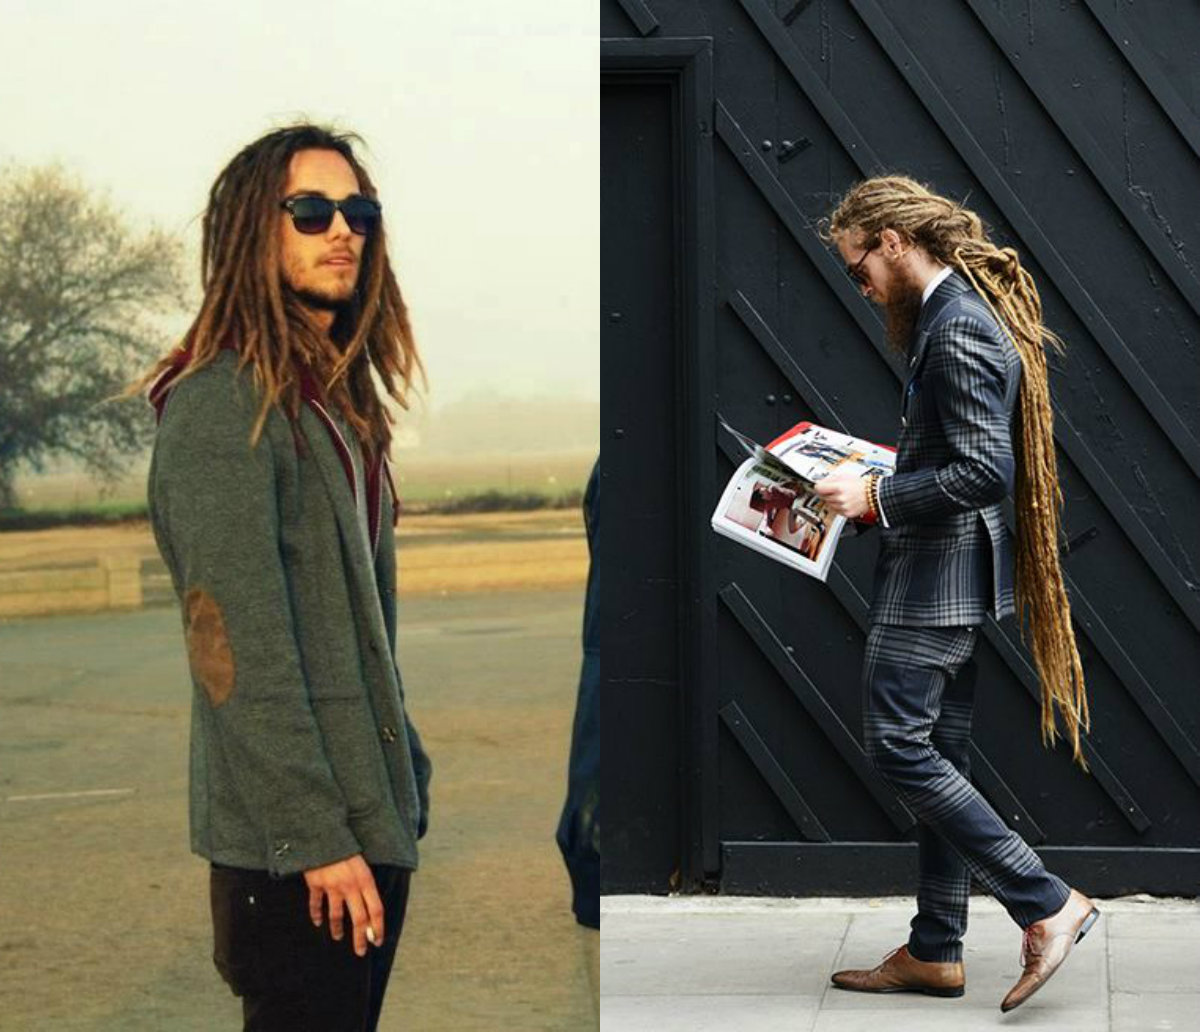 Male Dreadlocks Hairstyles 2017 To Express Individuality | Hairstyles ...